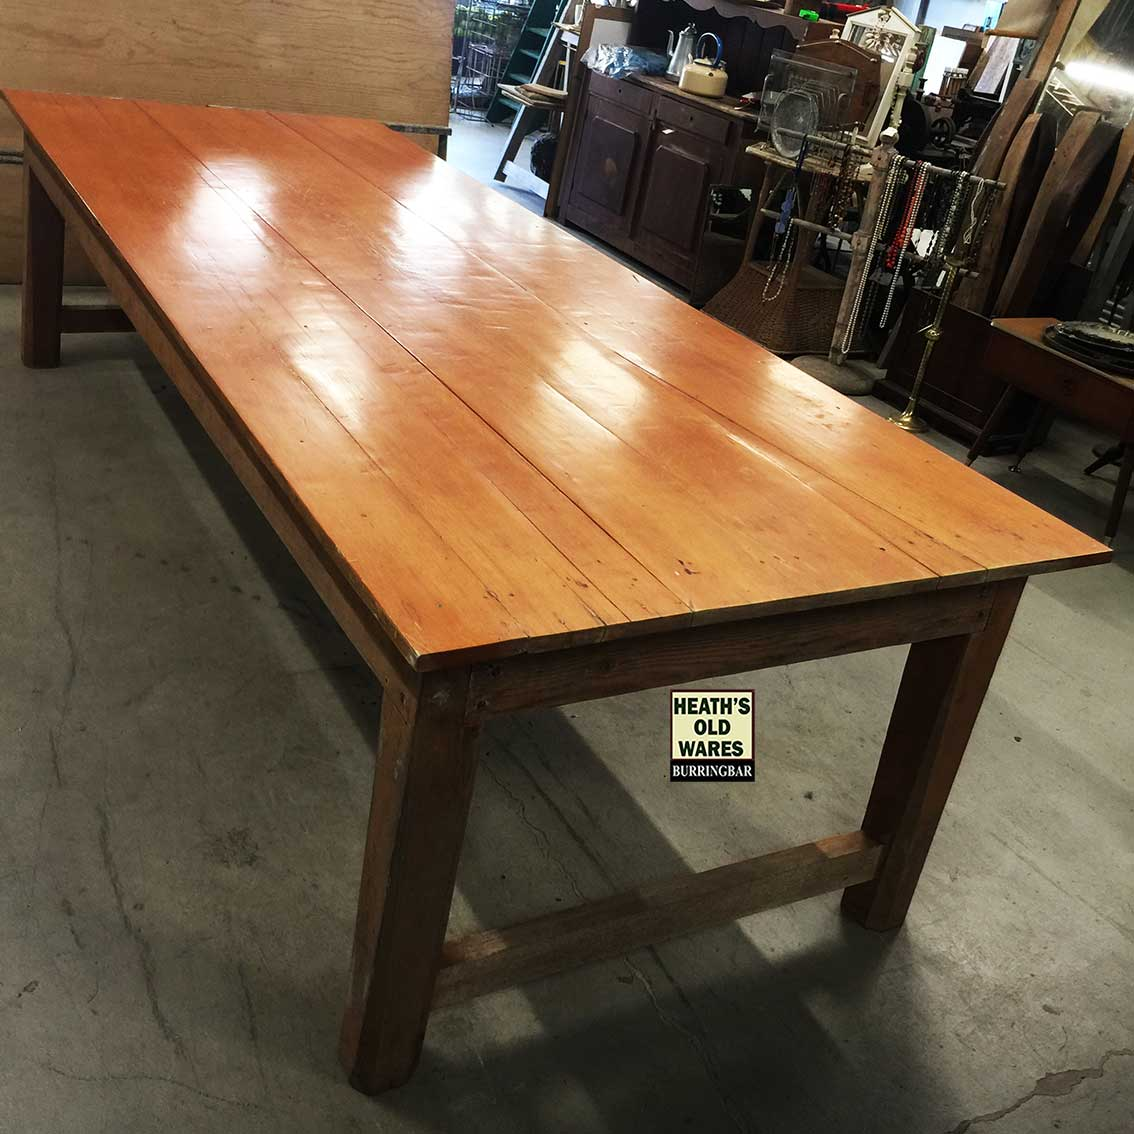 Large low pine dining table for sale at Heaths Old Wares, Collectables, Antiques & Industrial Antiques, 19-21 Broadway, Burringbar NSW 2483 Ph 0266771181 open 7 days